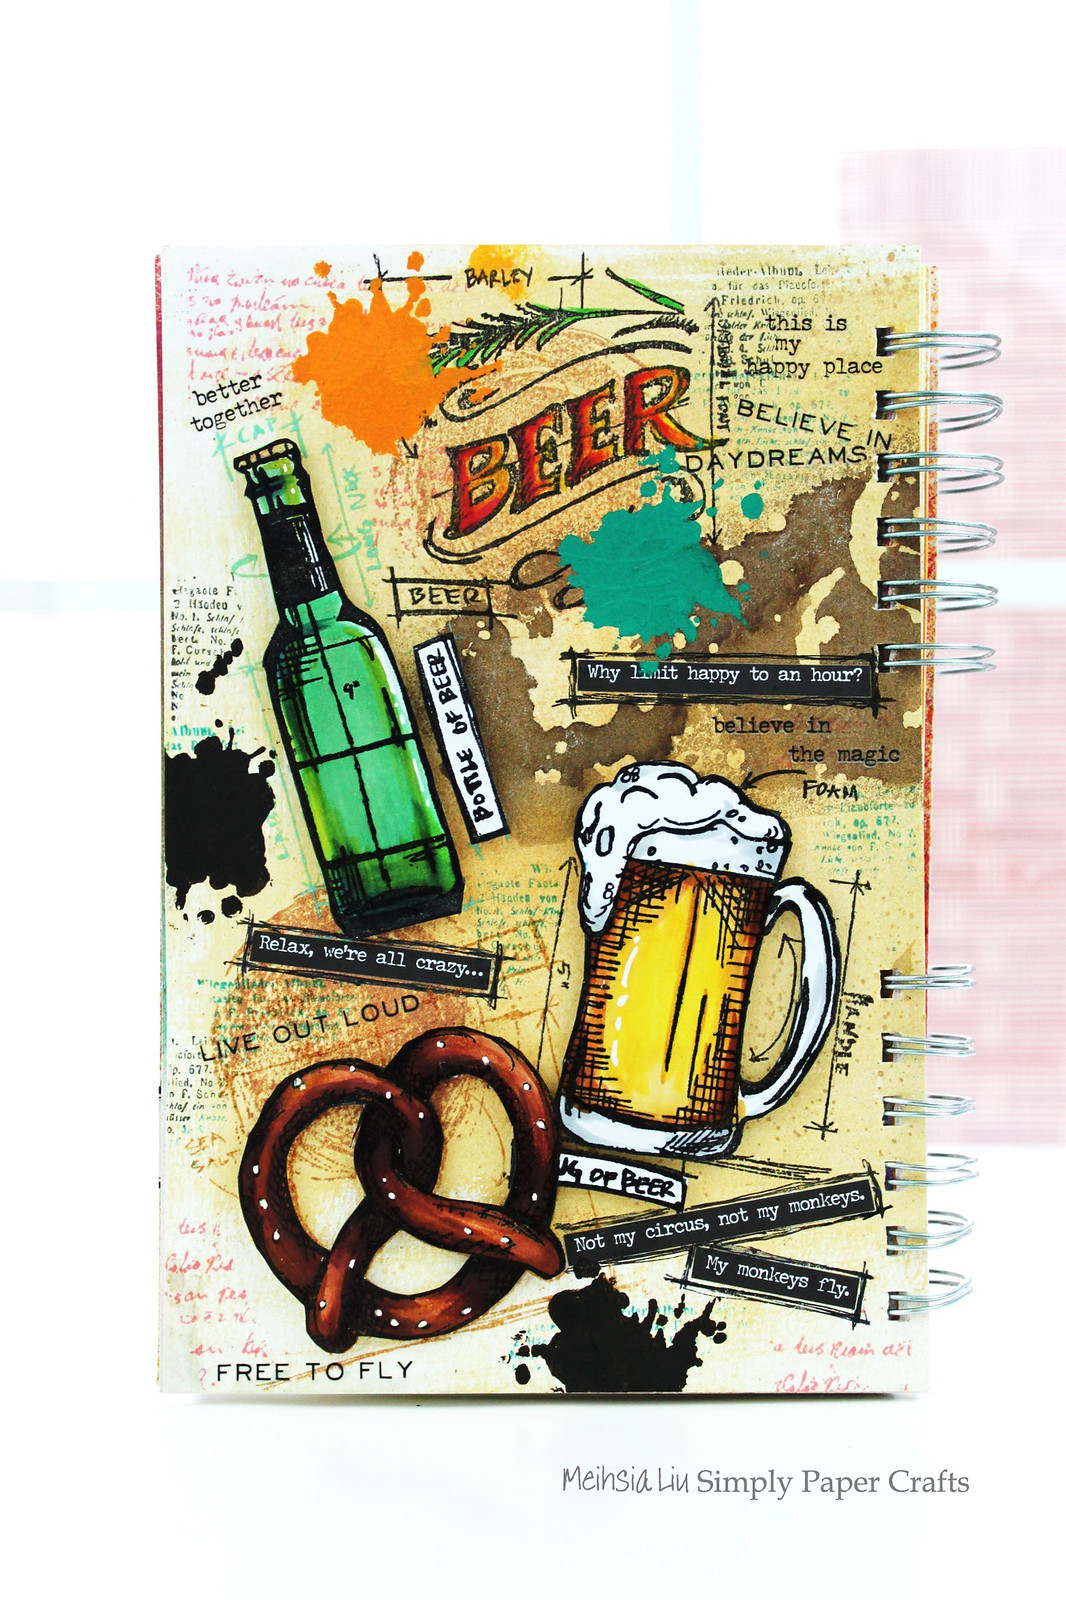 Meihsia Liu Simply Paper Crafts Mixed Media Tag Food Drink Beer Simon Says Stamp Tim Holtz